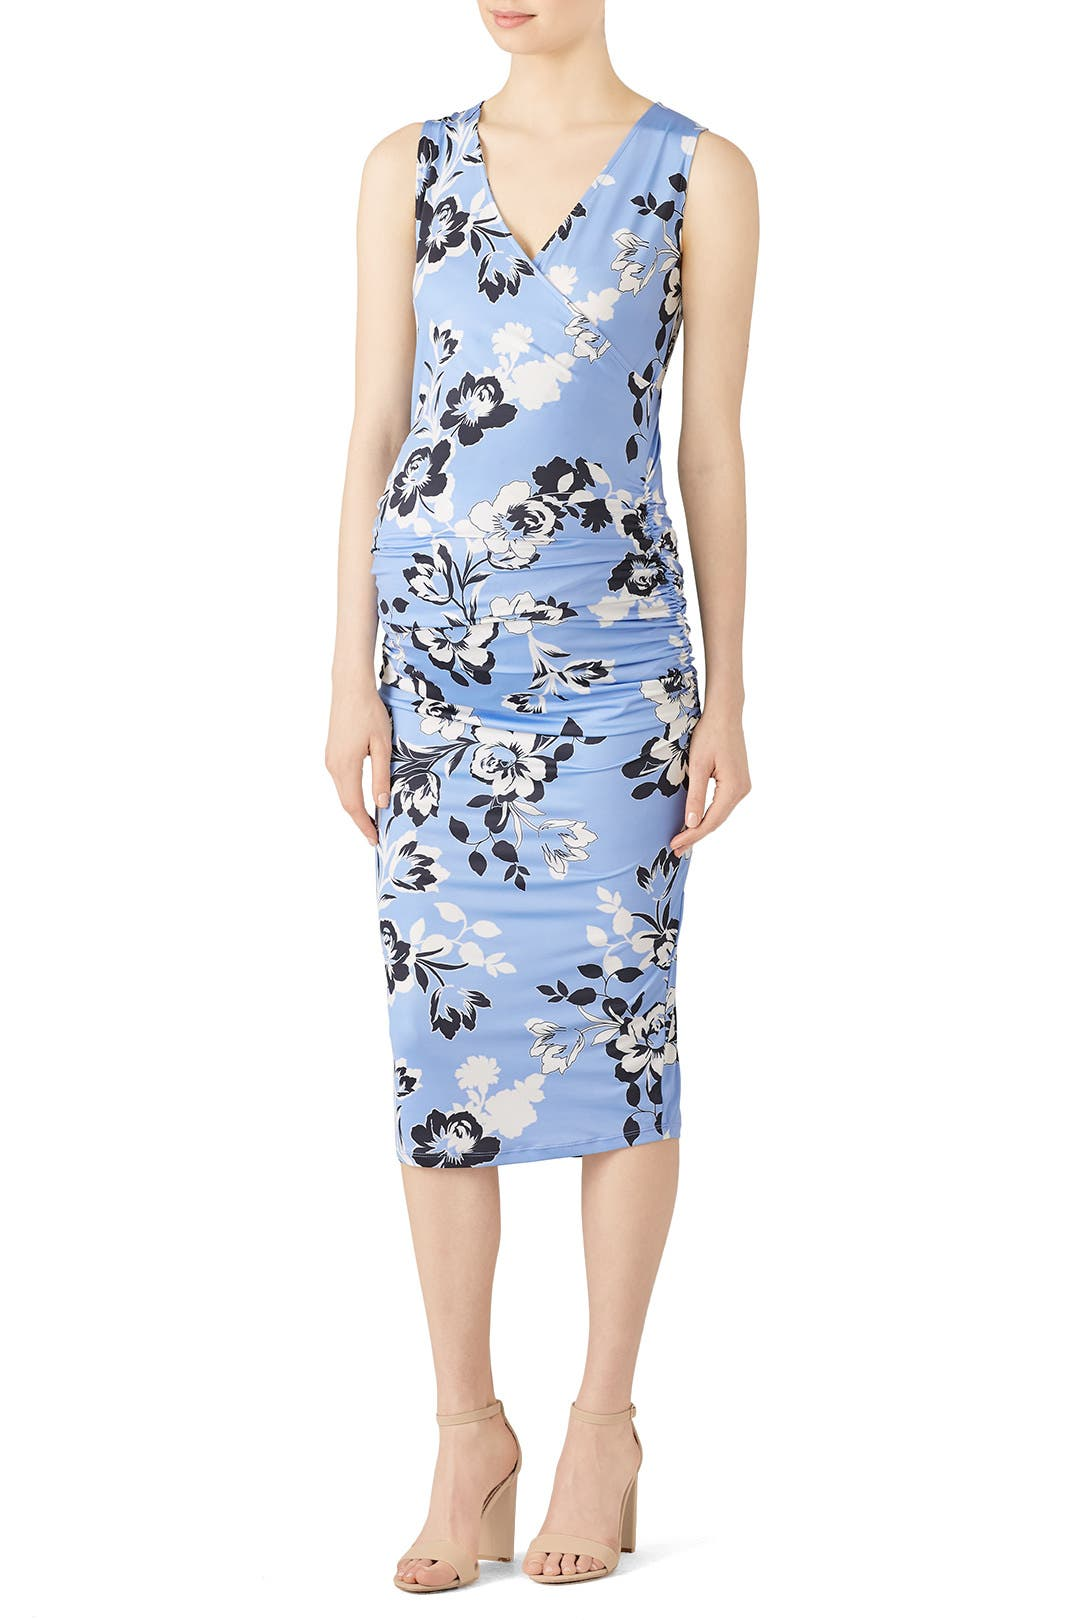 Hold Tight Maternity Dress By Yumi Kim For 30 Rent The Runway